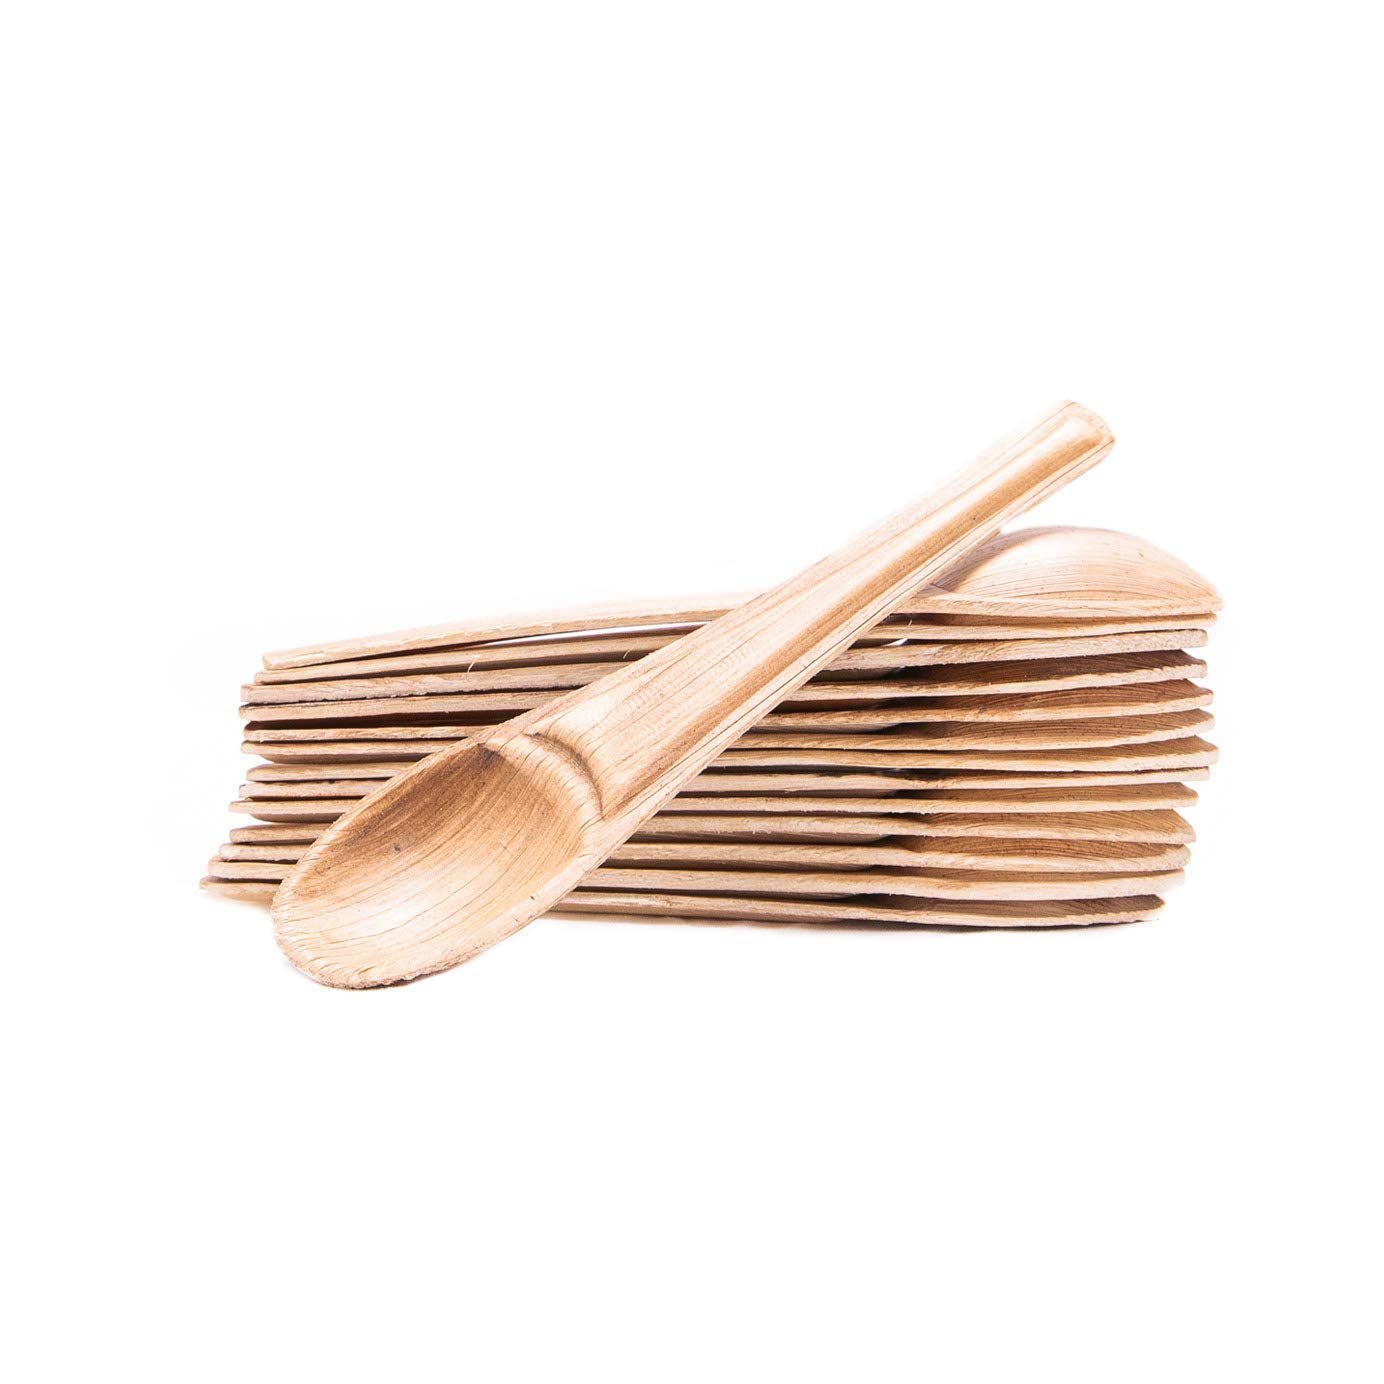 Naturally Chic Palm Leaf Tea Spoons | 6 Inch Biodegradable Disposable Serving Utensil Bulk Set - Eco Friendly - Desserts, Parties, Coffee, Soups (25 Pack)